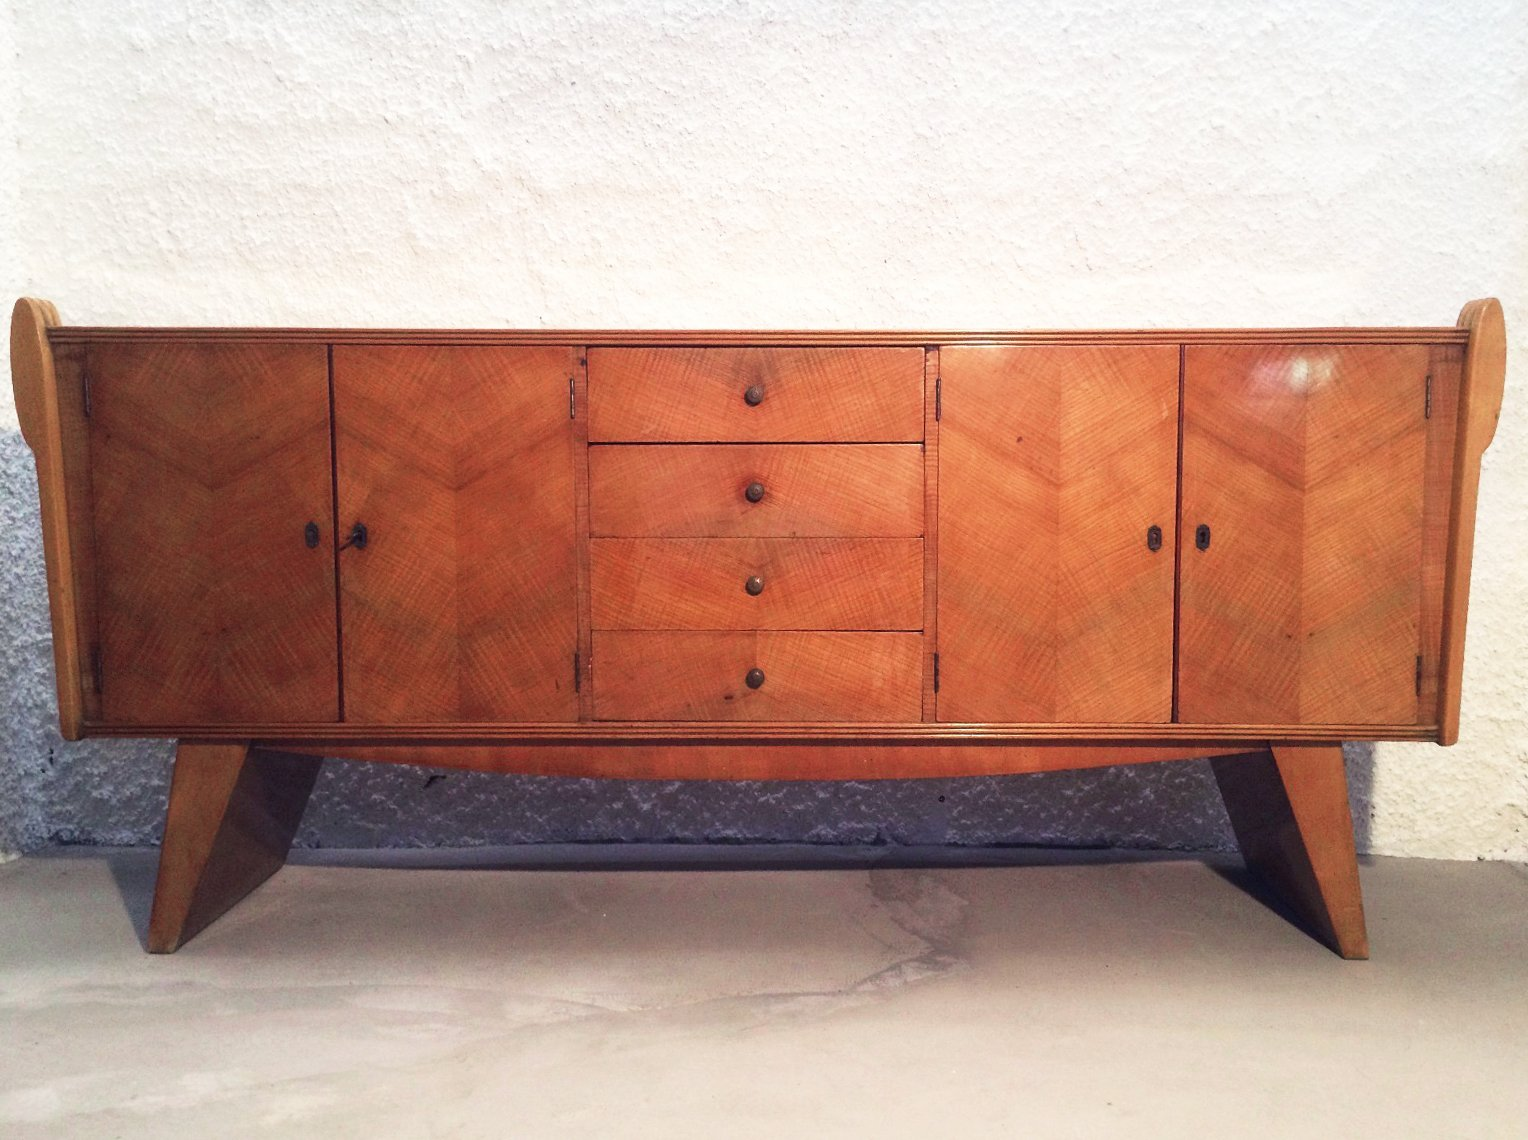 italian art deco sideboard 1940s for sale at pamono. Black Bedroom Furniture Sets. Home Design Ideas